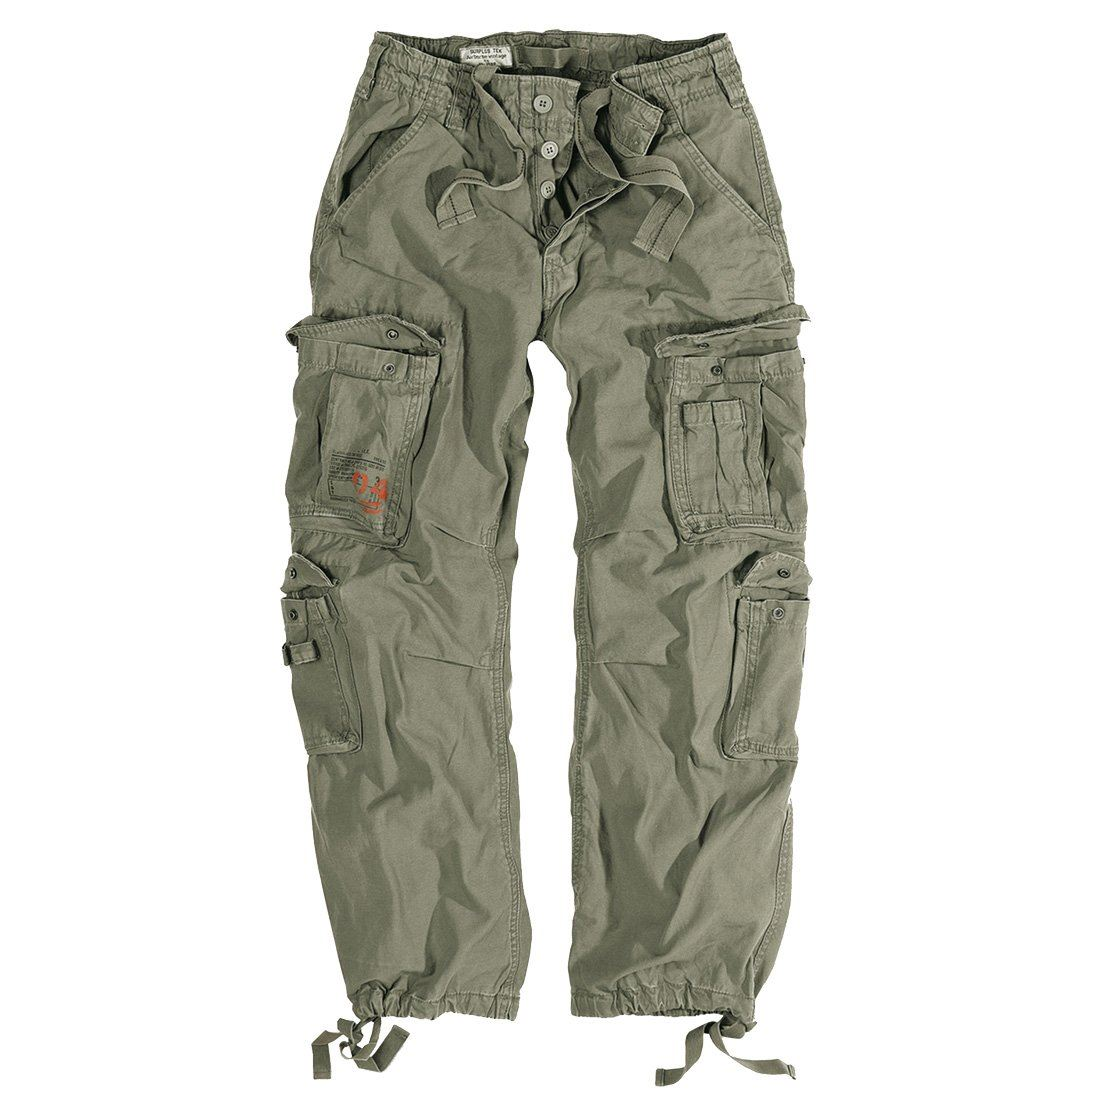 SURPLUS AIRBORNE MILITARY CARGO TROUSERS MENS ARMY VINTAGE COMBAT WORKWEAR  PANTS. Click on the Image to Enlarge 4d968759554